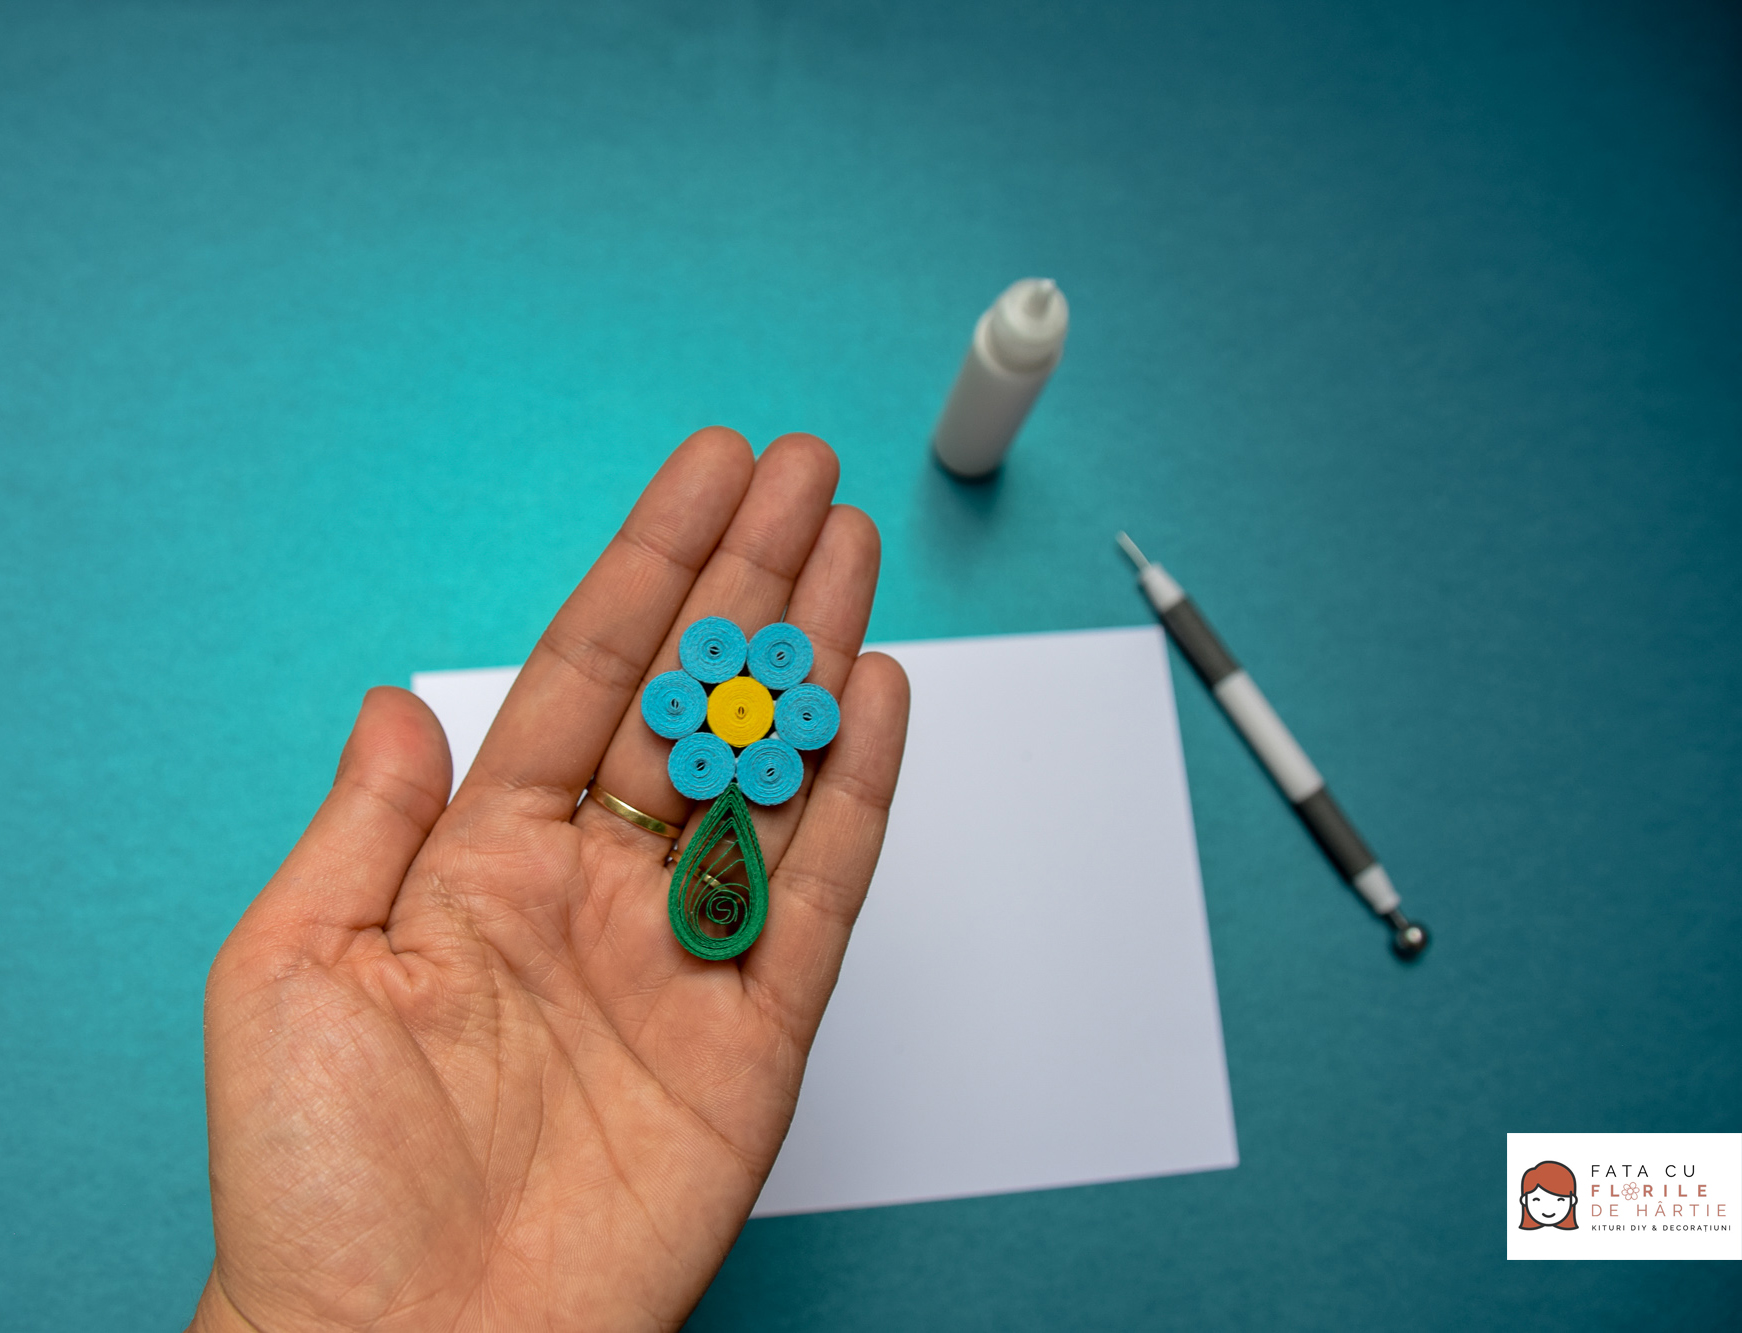 How to Make a Quilling Flower in 3 Easy Steps | Paper Flowers and Decorations for Party Favors, Scrapbooking & more #quilling #paperflowers #tutorial #diytutorial #diyprojects